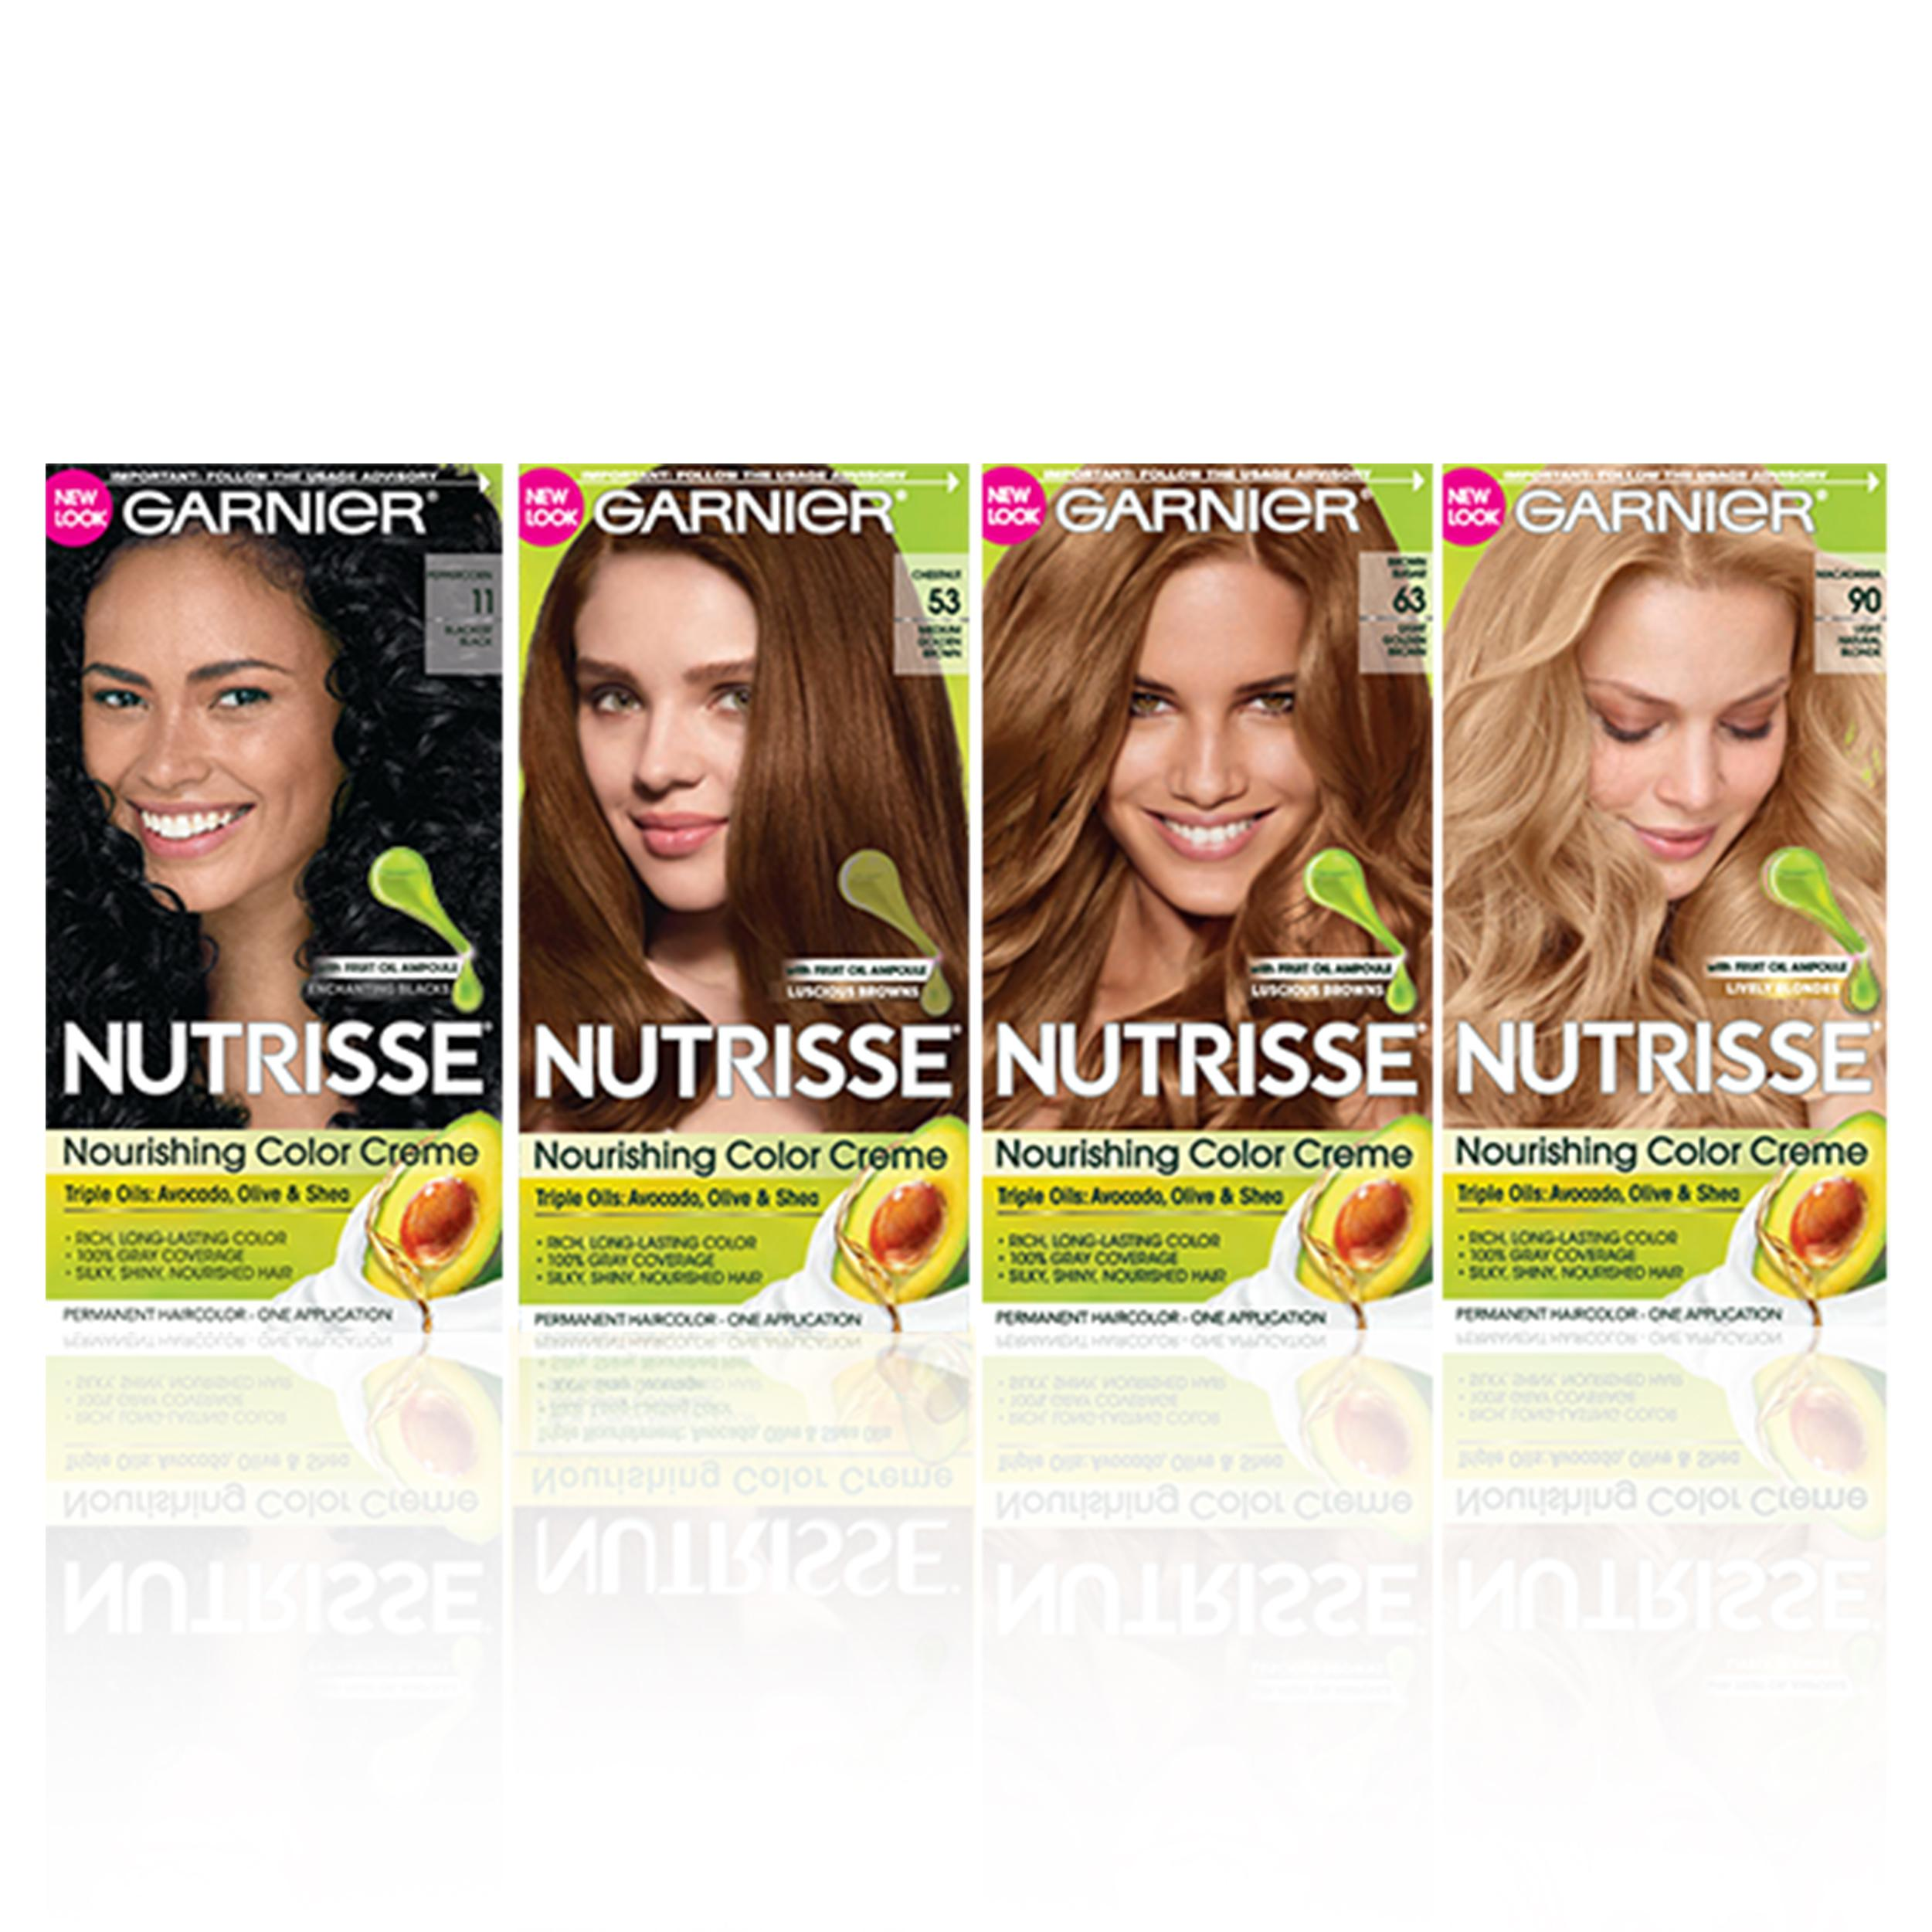 Amazon Garnier Nutrisse Nourishing Color Creme 61 Light Ash